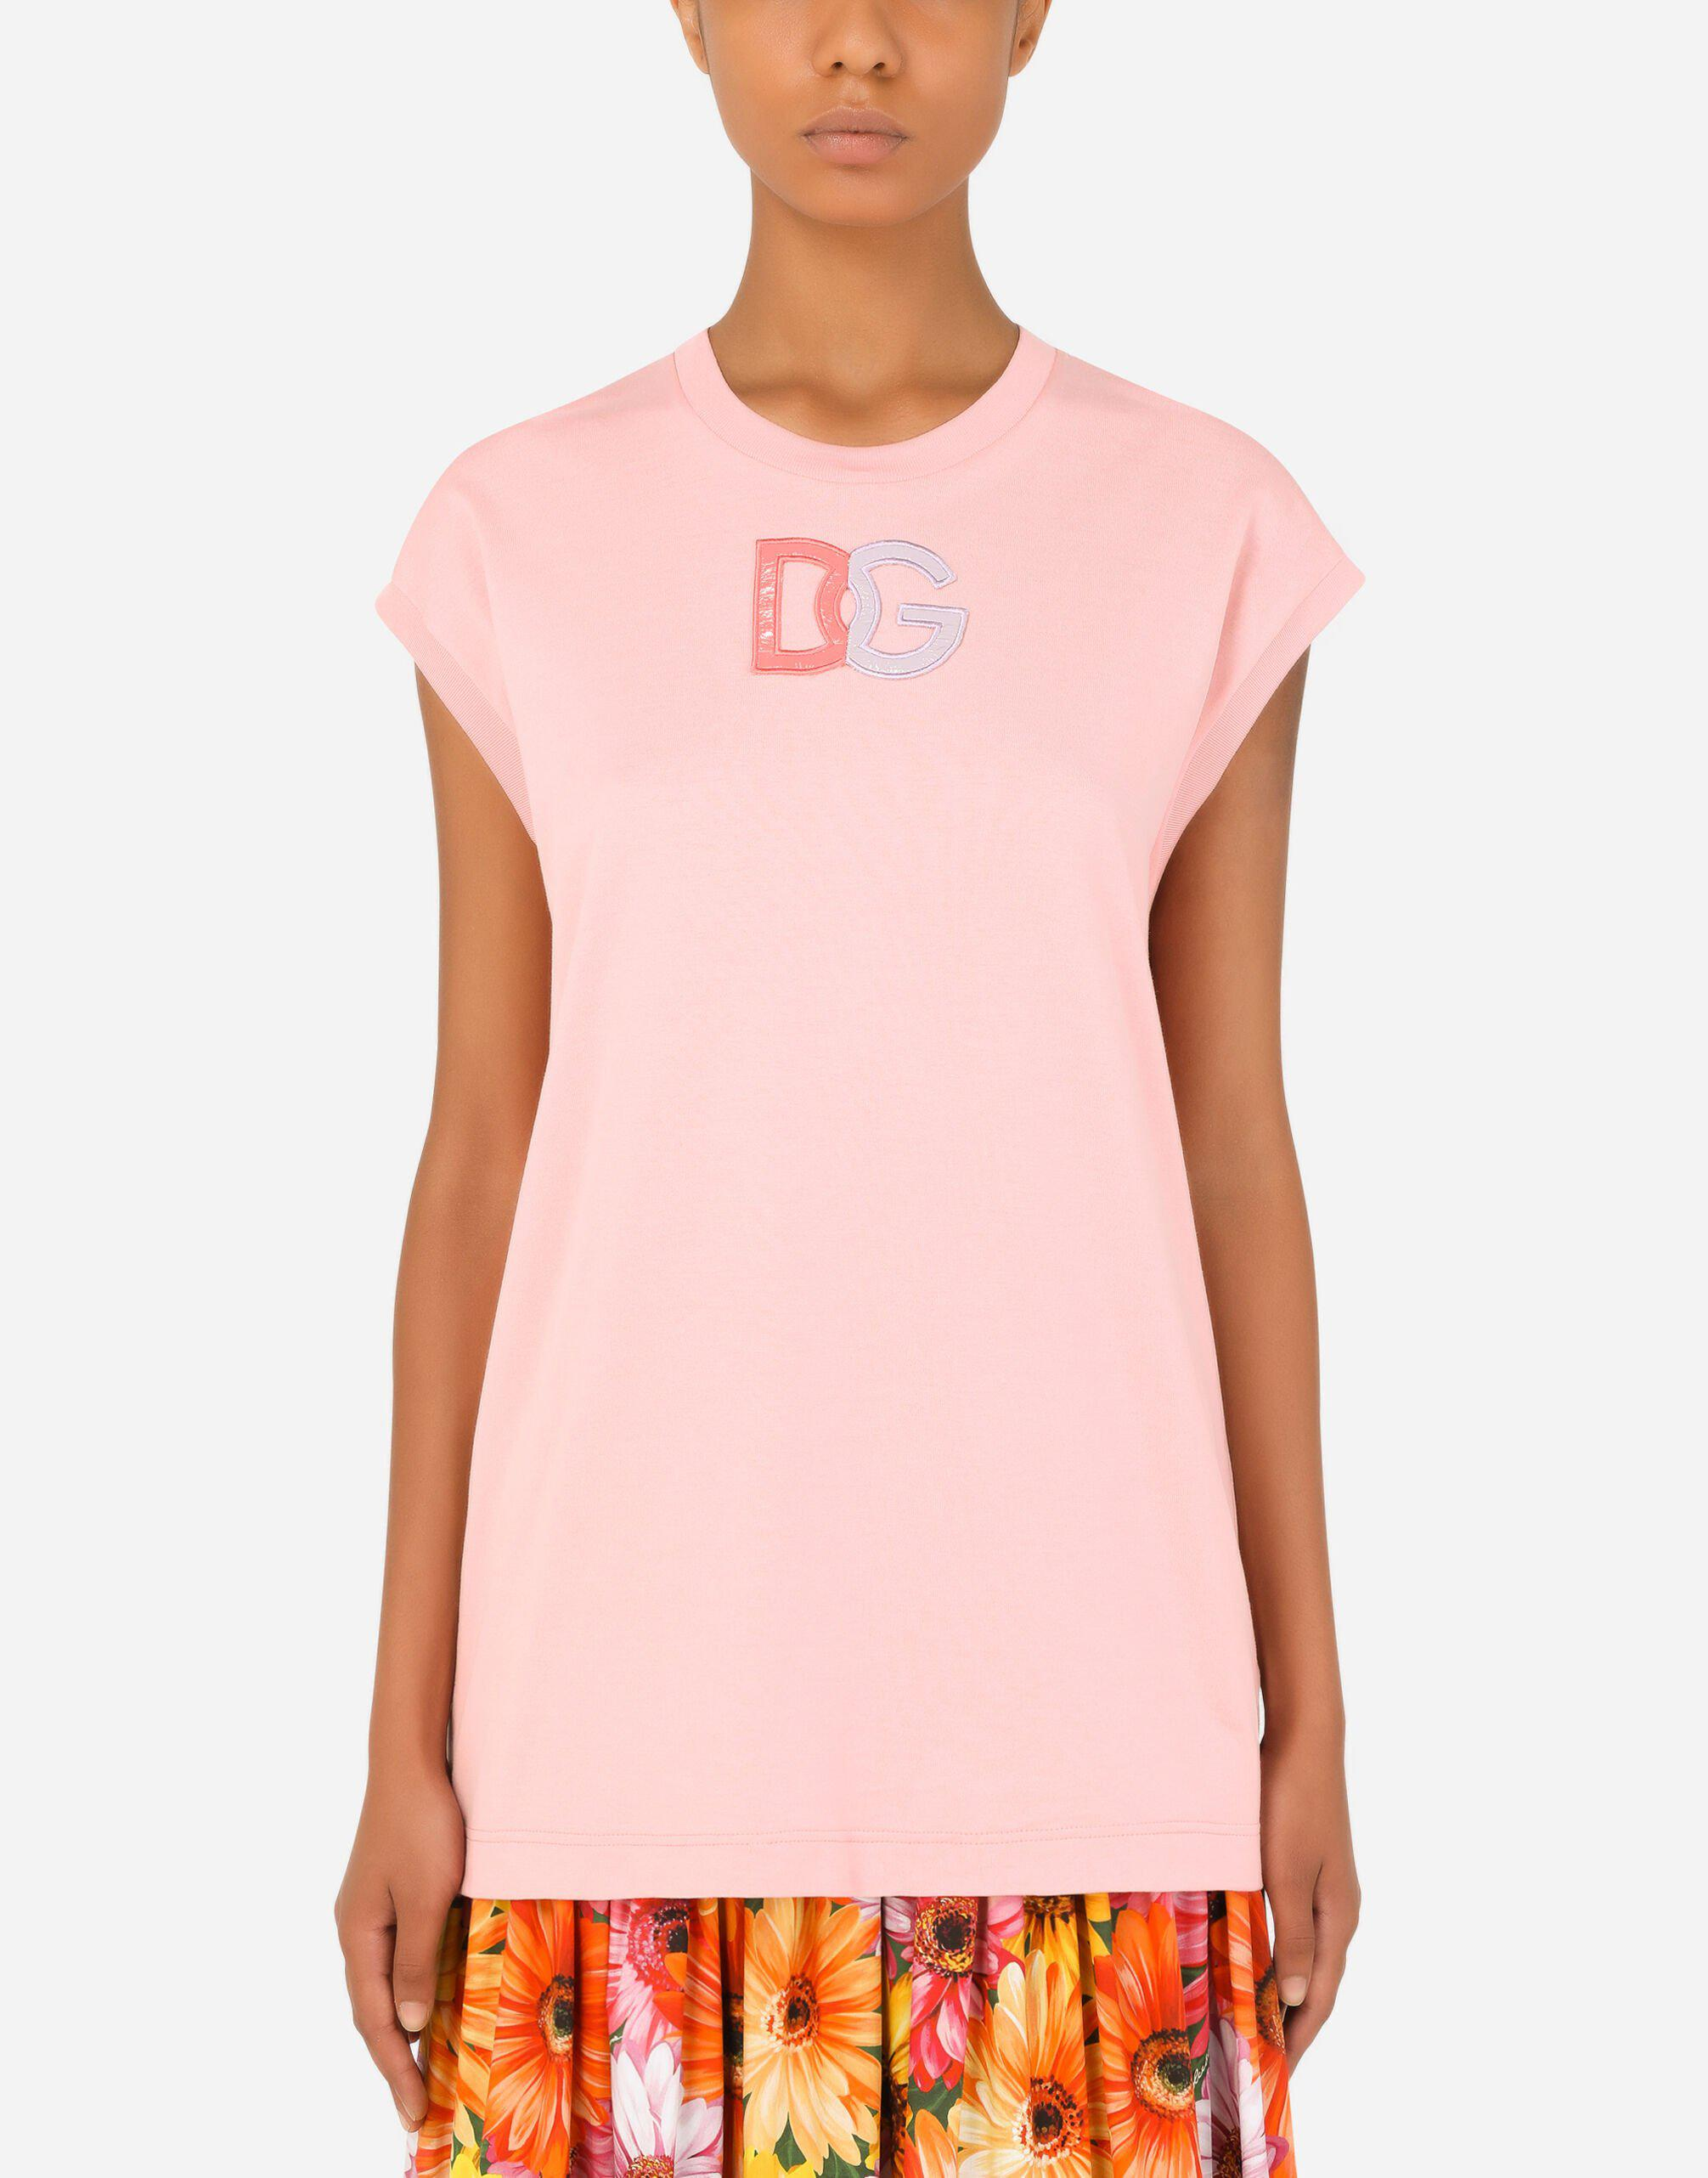 Jersey T-shirt with patent leather DG patch